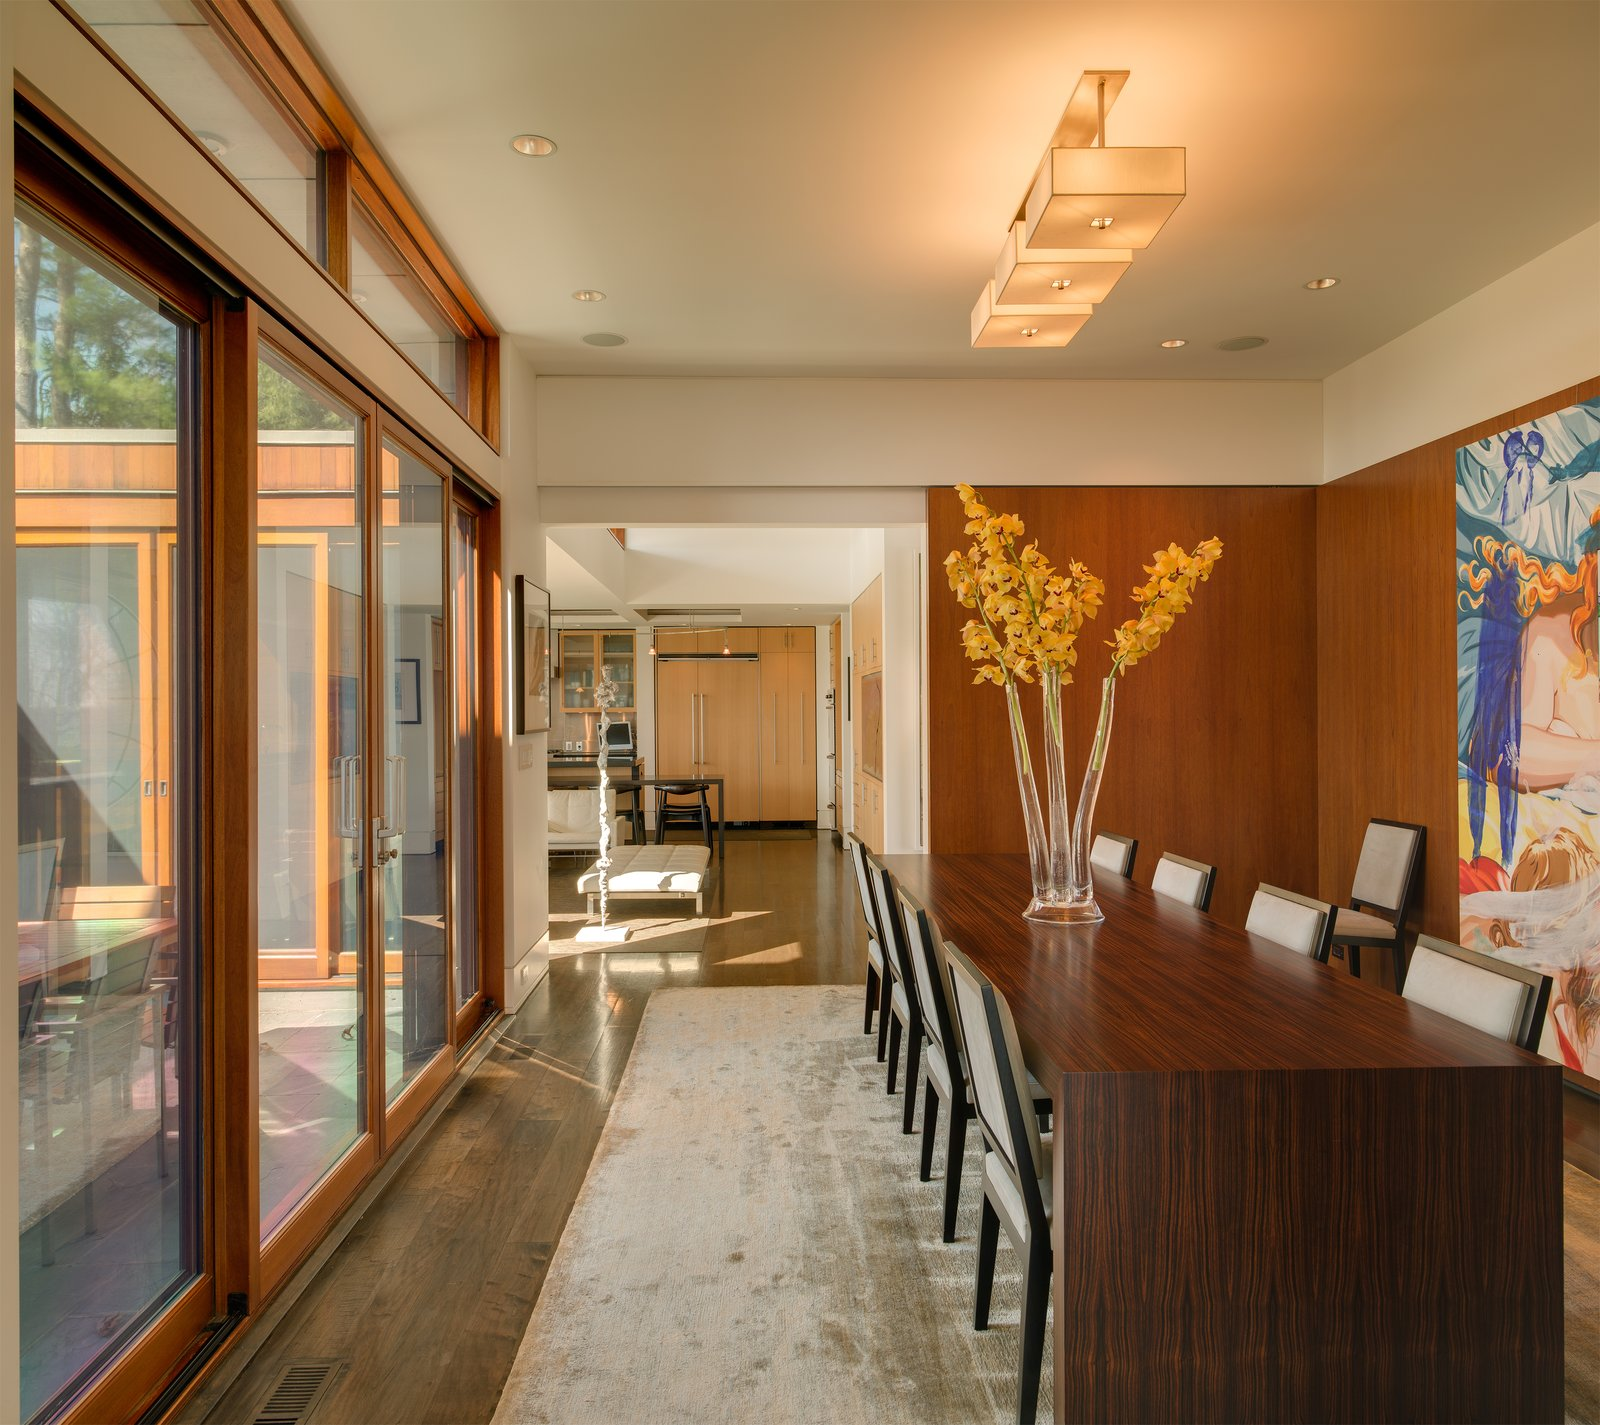 The formal dining room can open onto the terrace as well, while sliding pocket doors give the option of privacy and intimacy.  Photo 6 of 8 in An Eliot Noyes Transformation in Connecticut Honors the Experimental Spirit of the Original